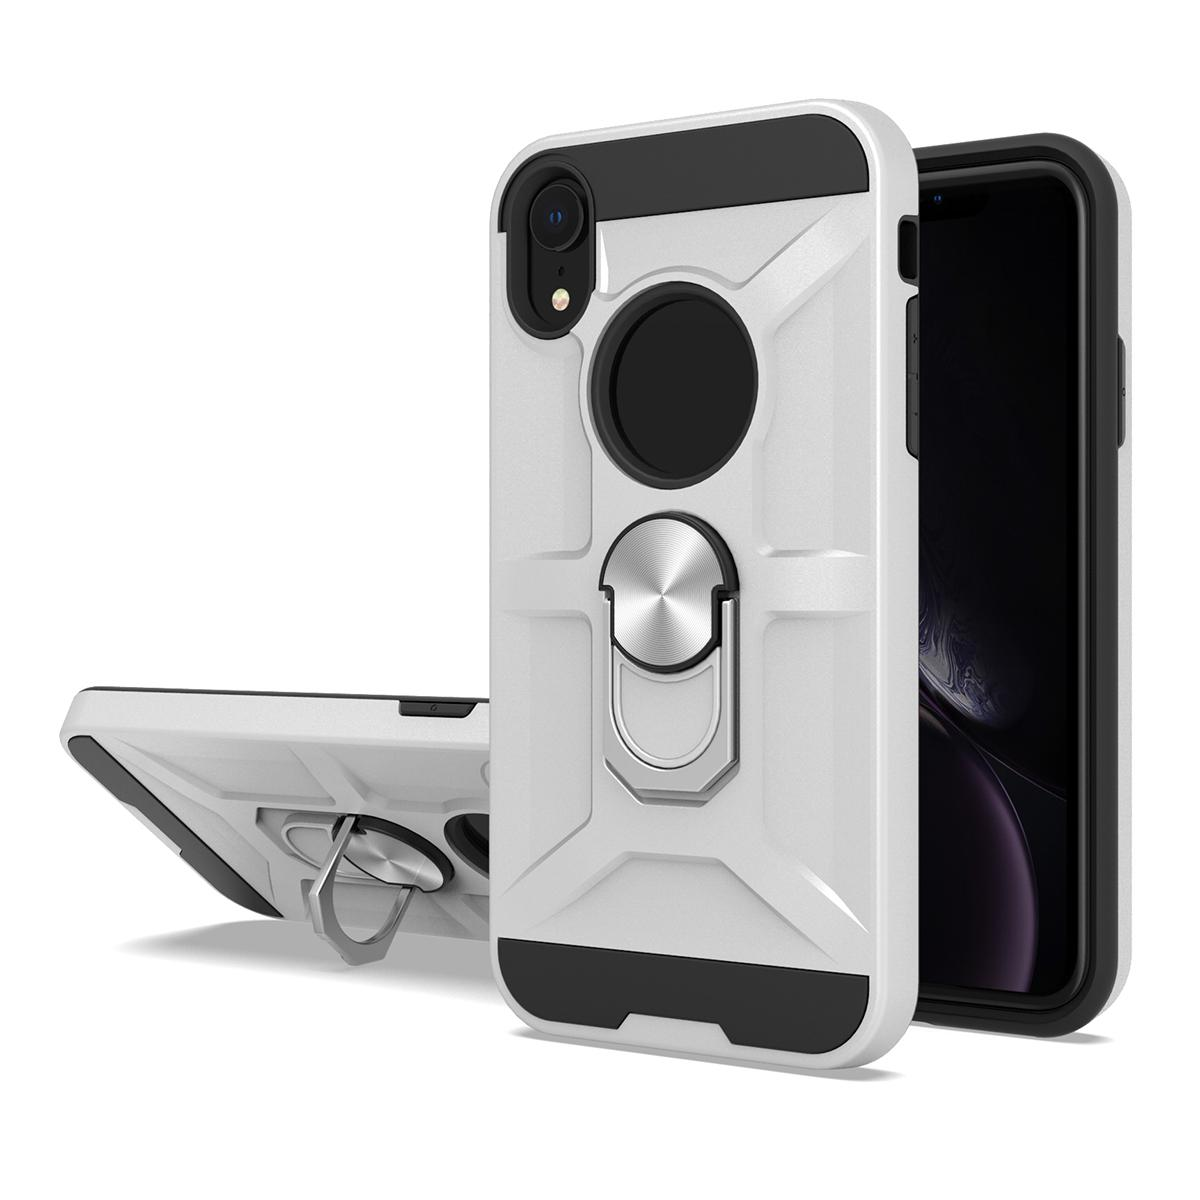 For LG V20 X5 LV3 LV1 G6 G4 X165 V10 K7 K10 K520 360°Rotation Metal Ring Shockproof Protection Magnetic PC TPU Armor Phone Case Cover